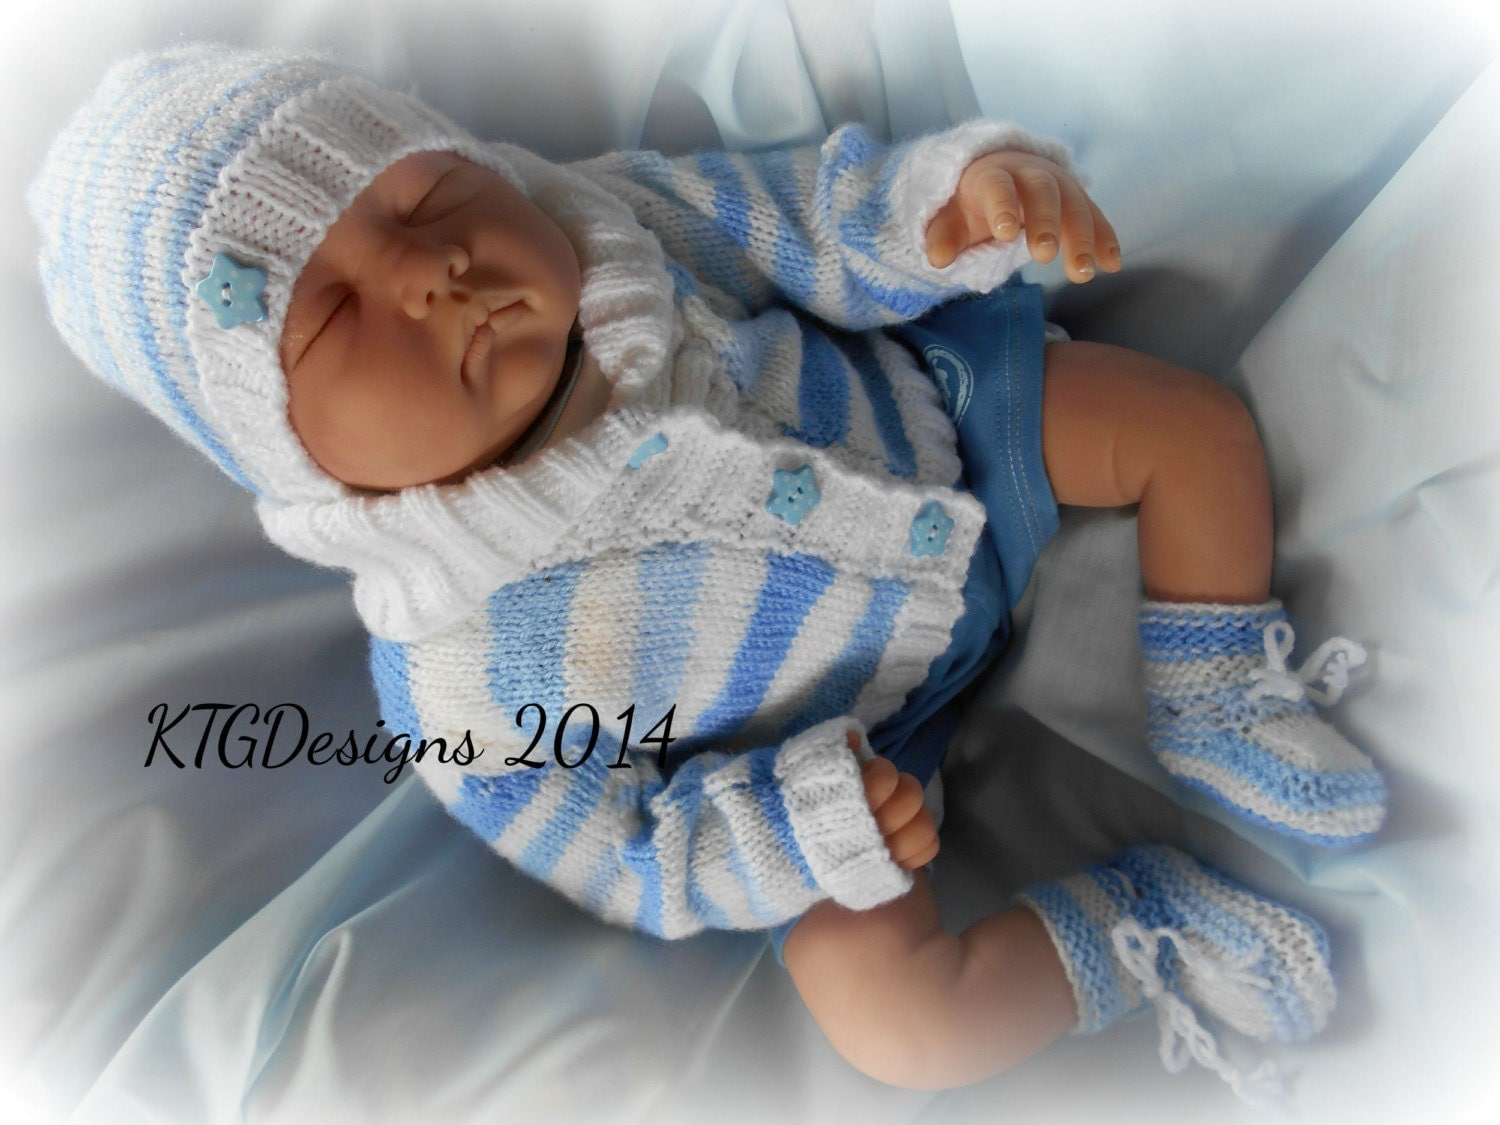 Baby Knitting Patterns With Instructions : Knitting pattern instructions to knit baby boys or reborn doll